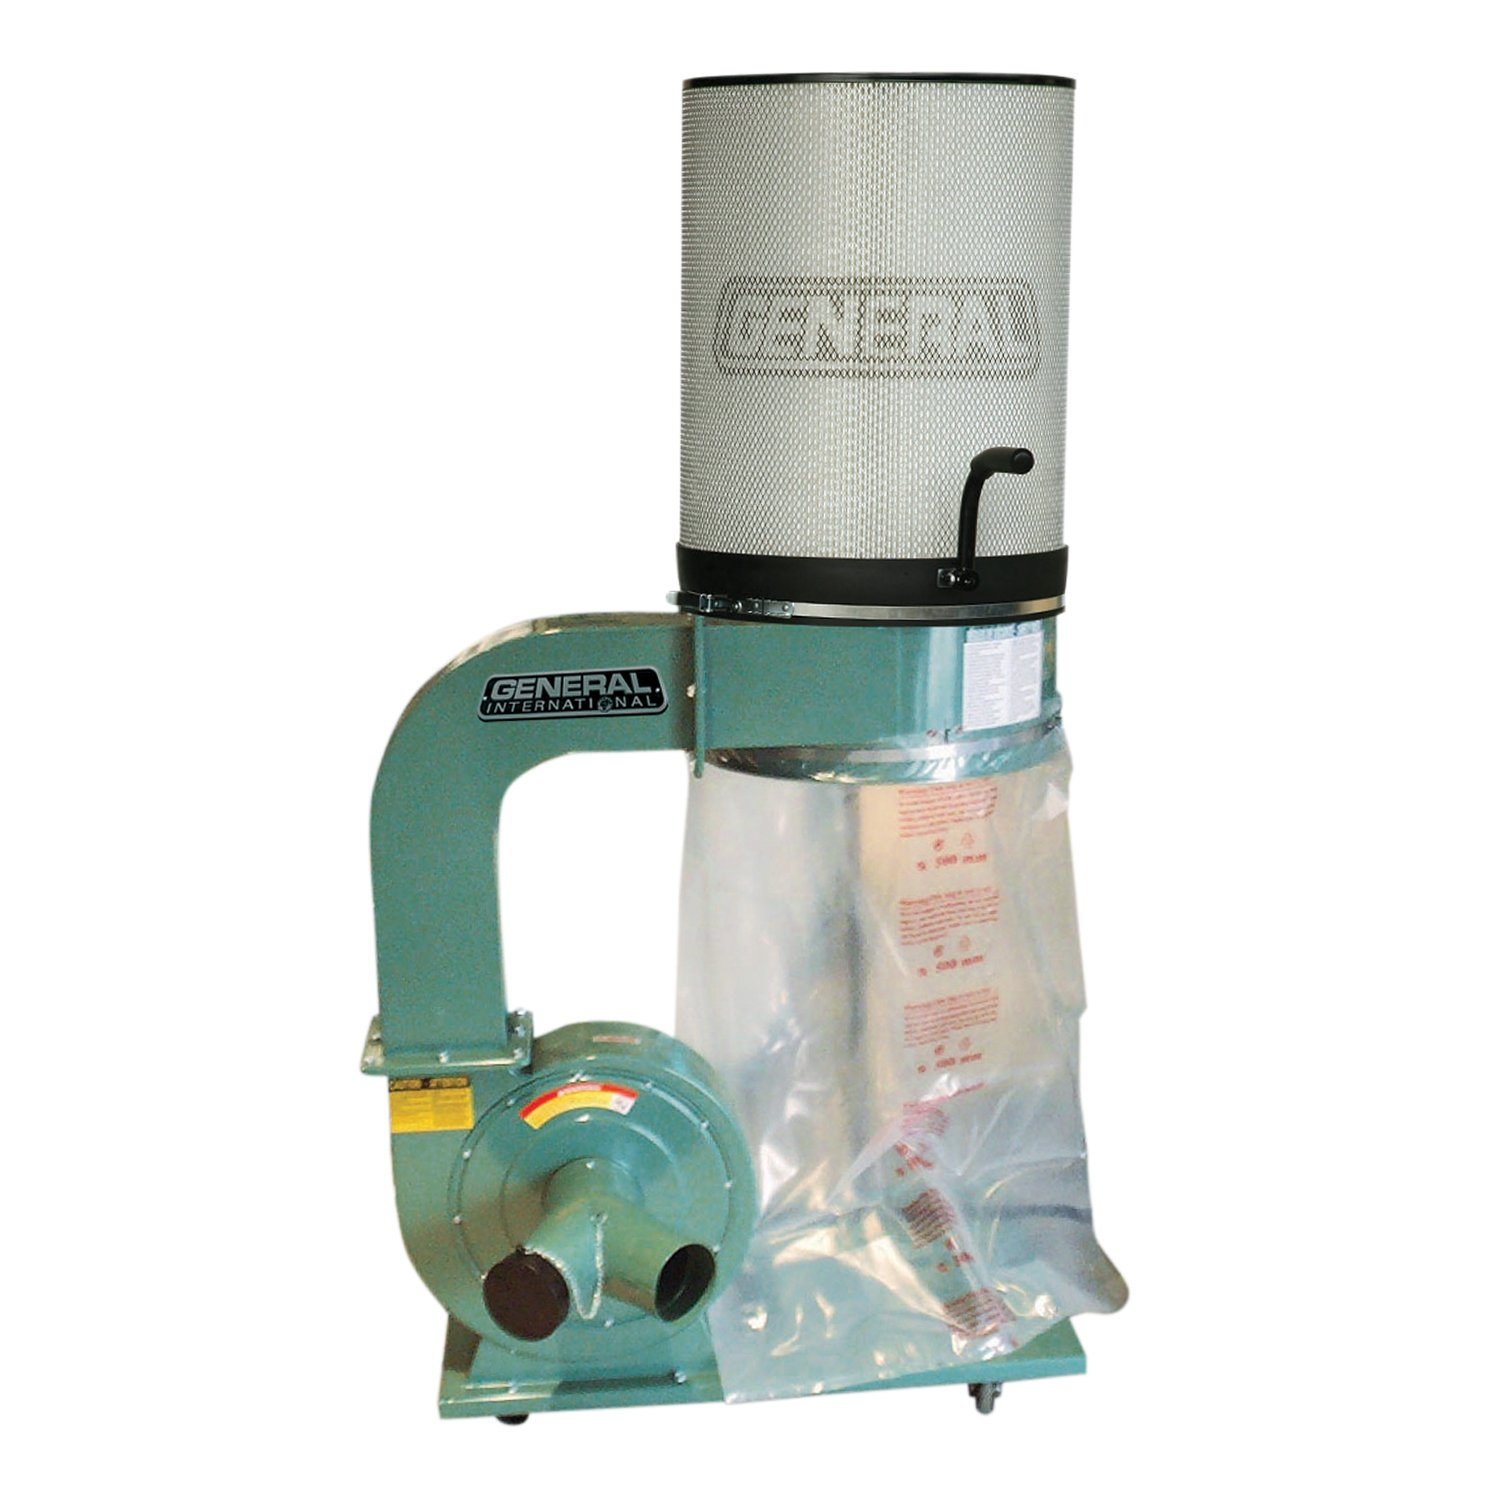 General International 10-110CF M1 2 HP Dust Collector with 1 Micron Canister Filter